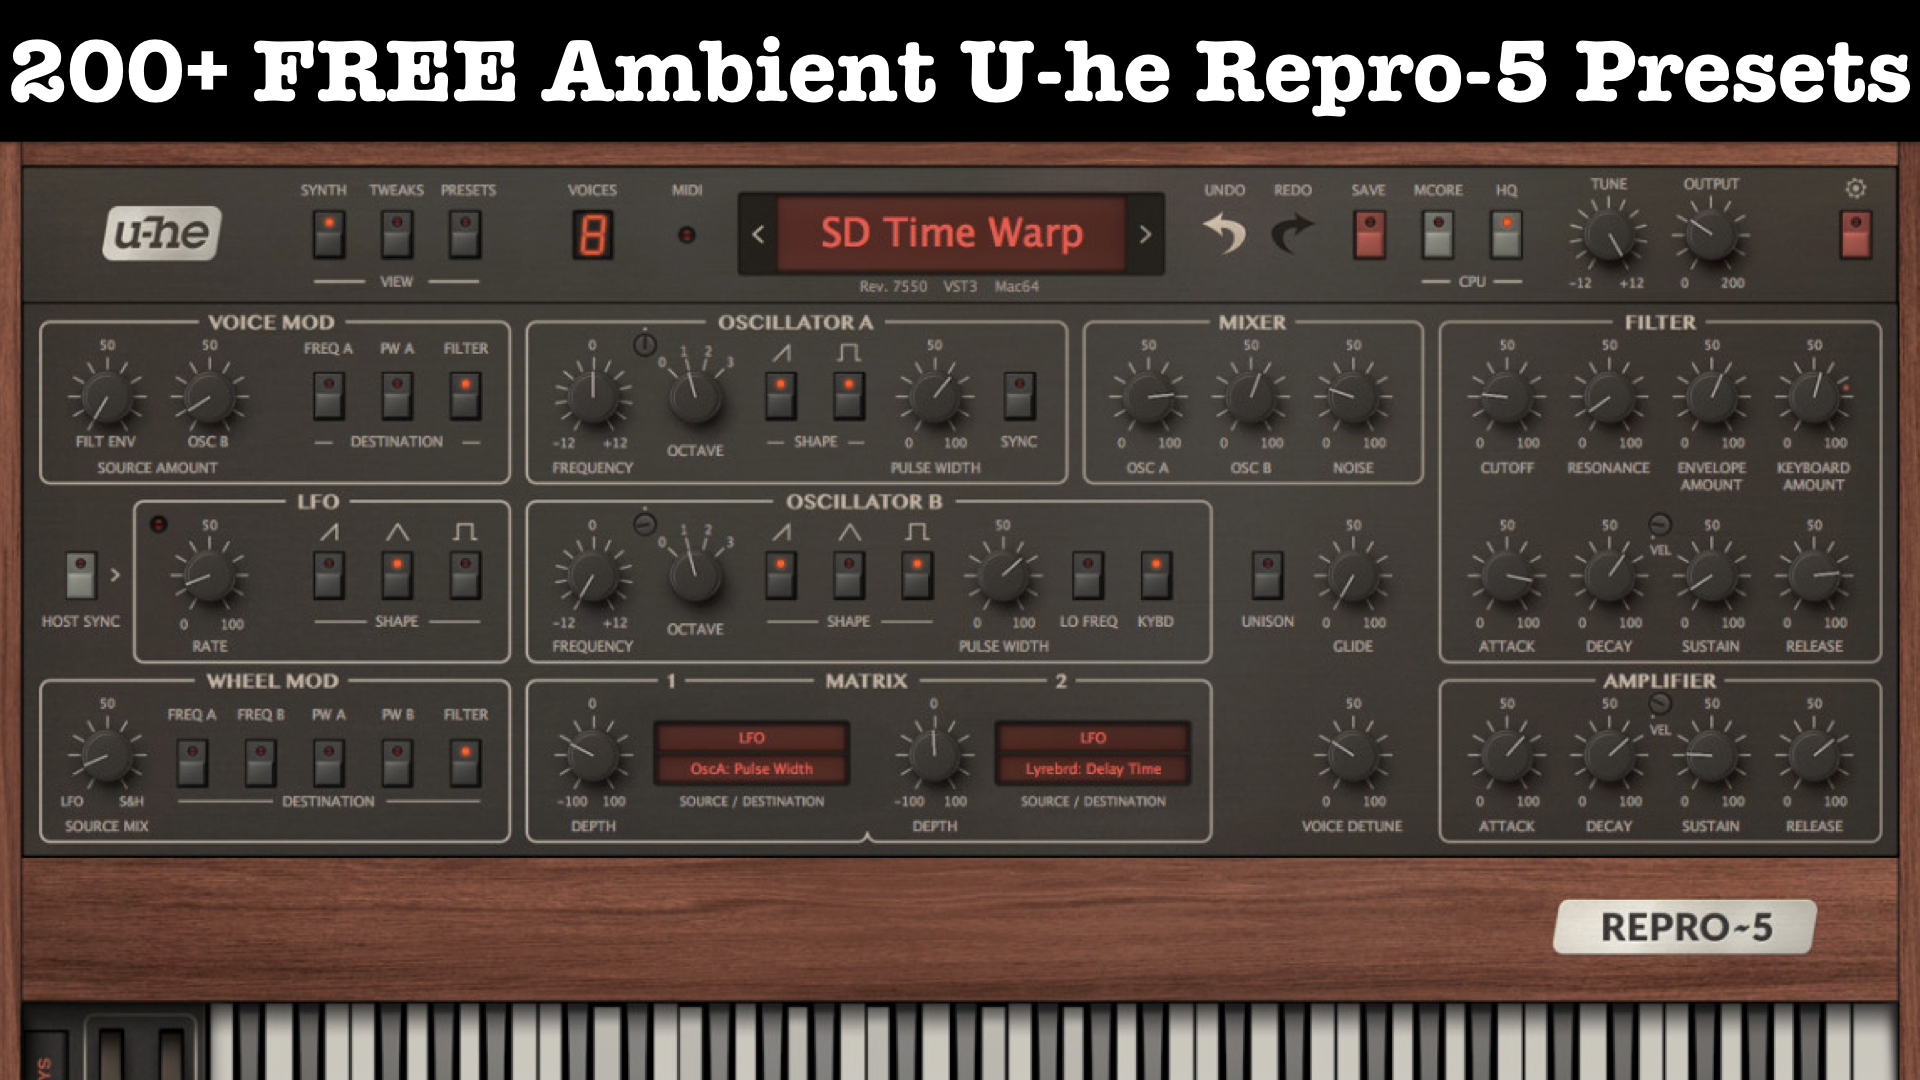 200+ FREE Ambient U-he Repro-5 Presets & 50% OFF Sale Repro